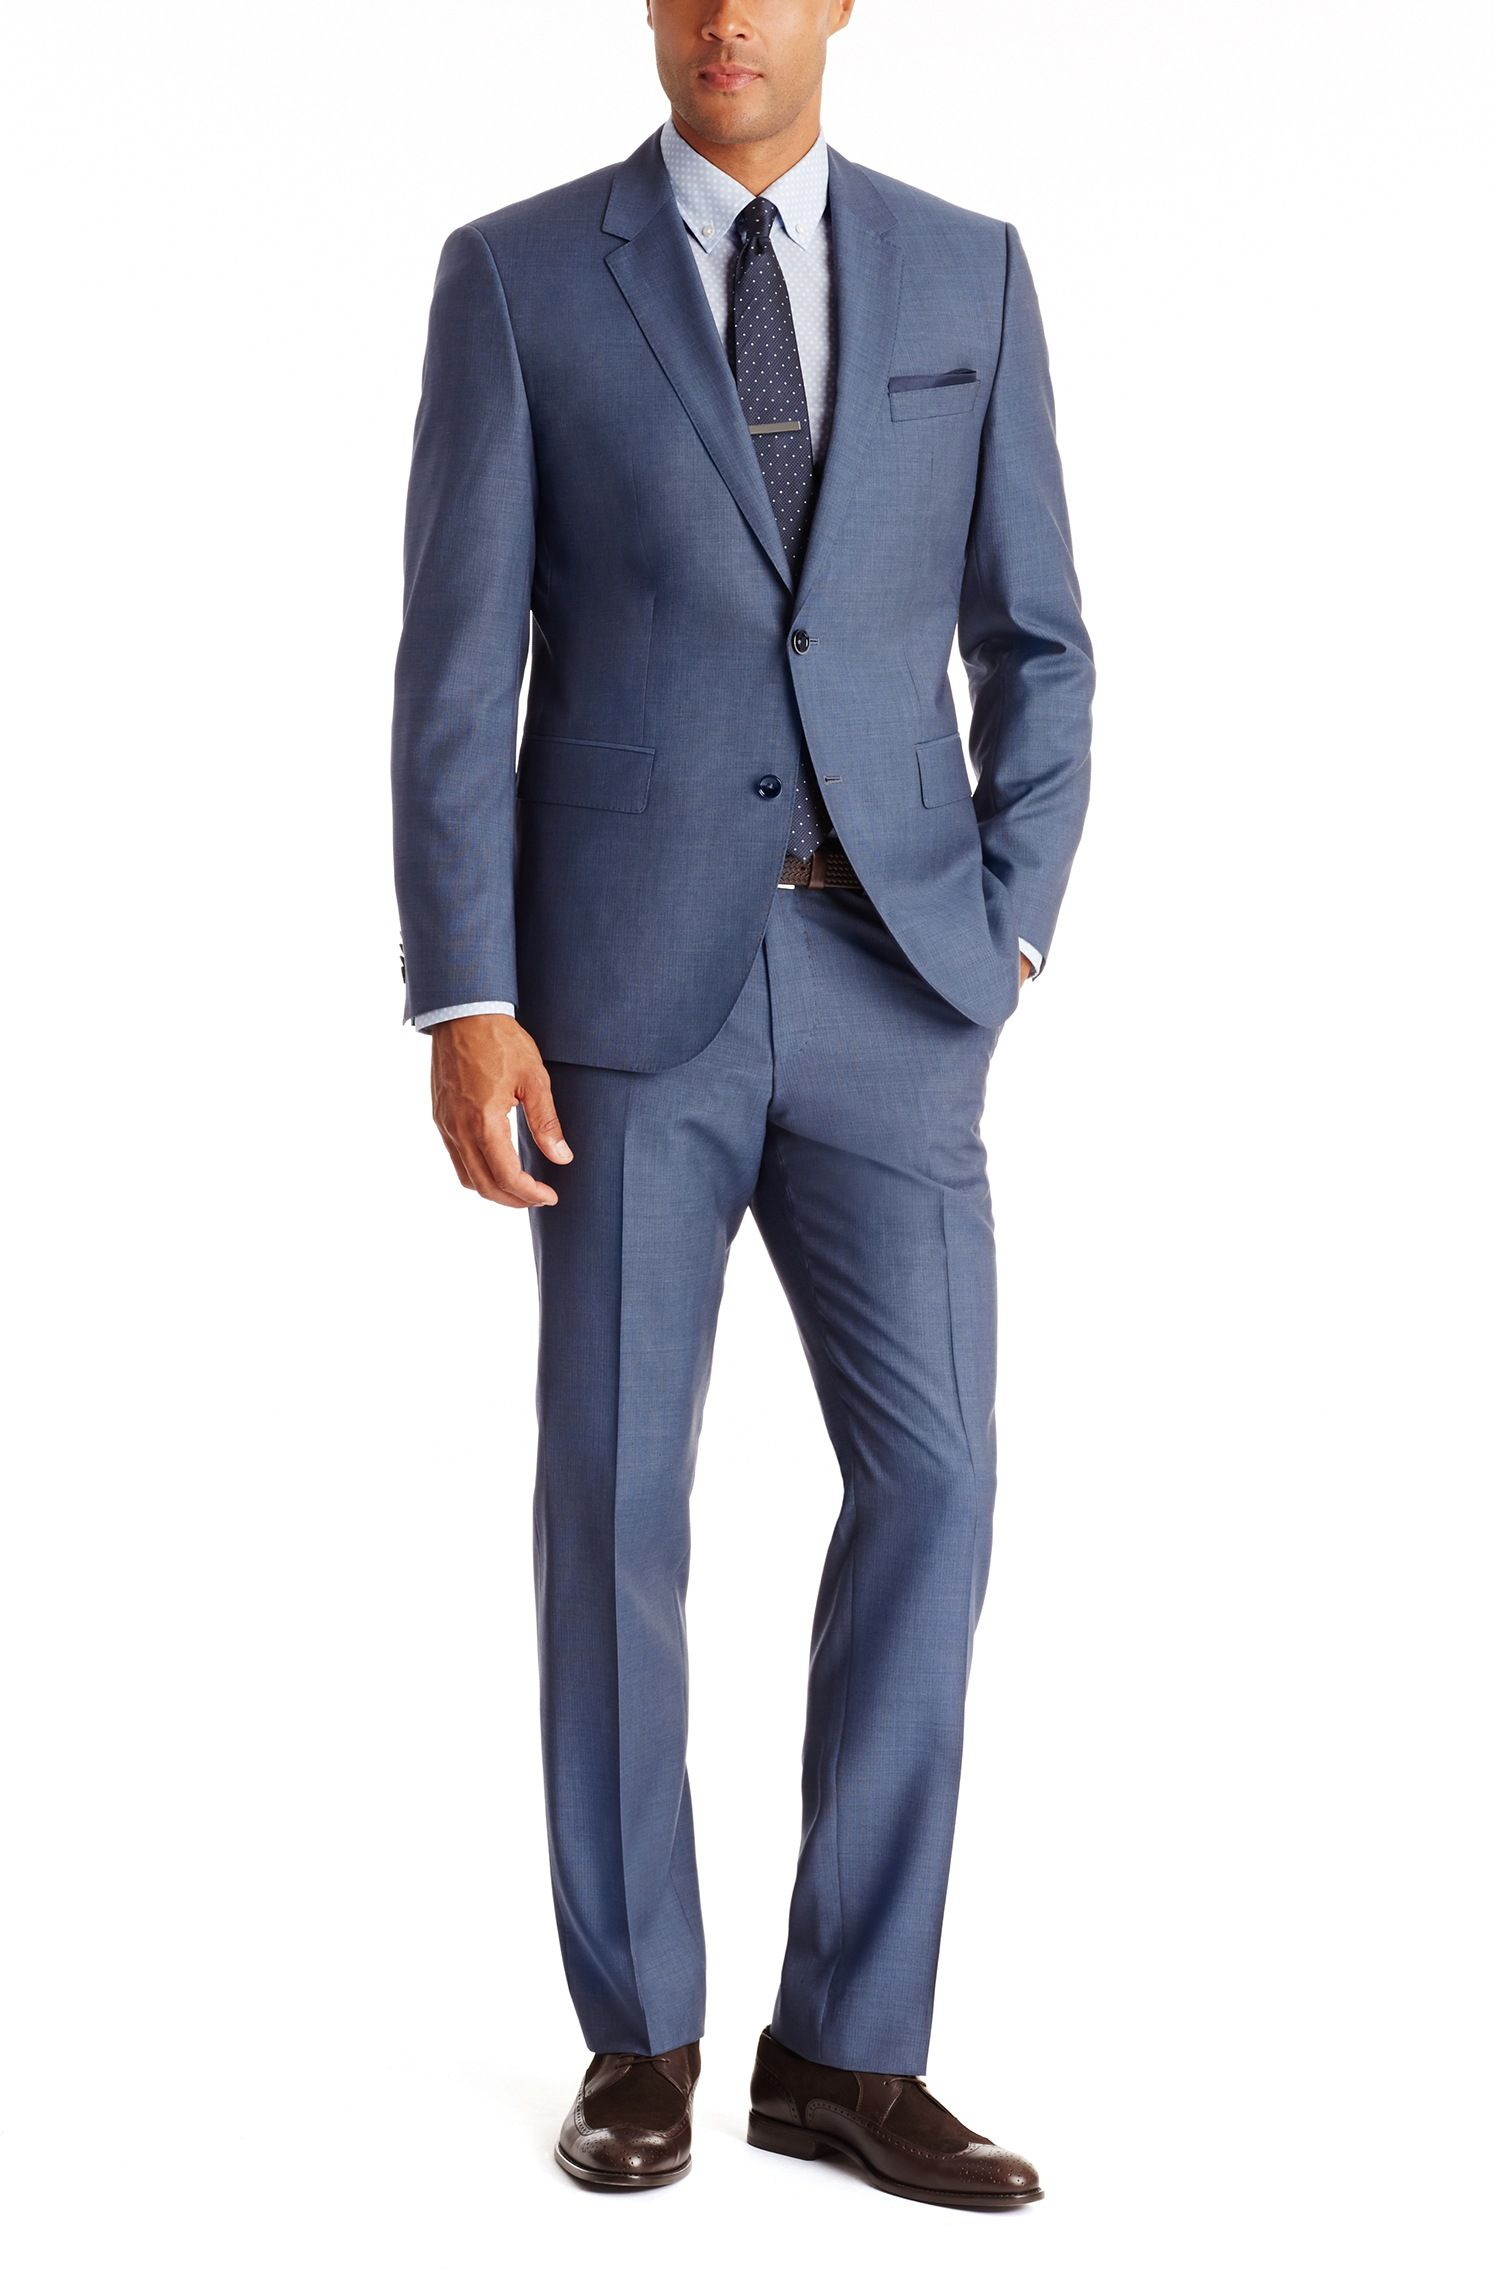 Pin on Thamer Suits